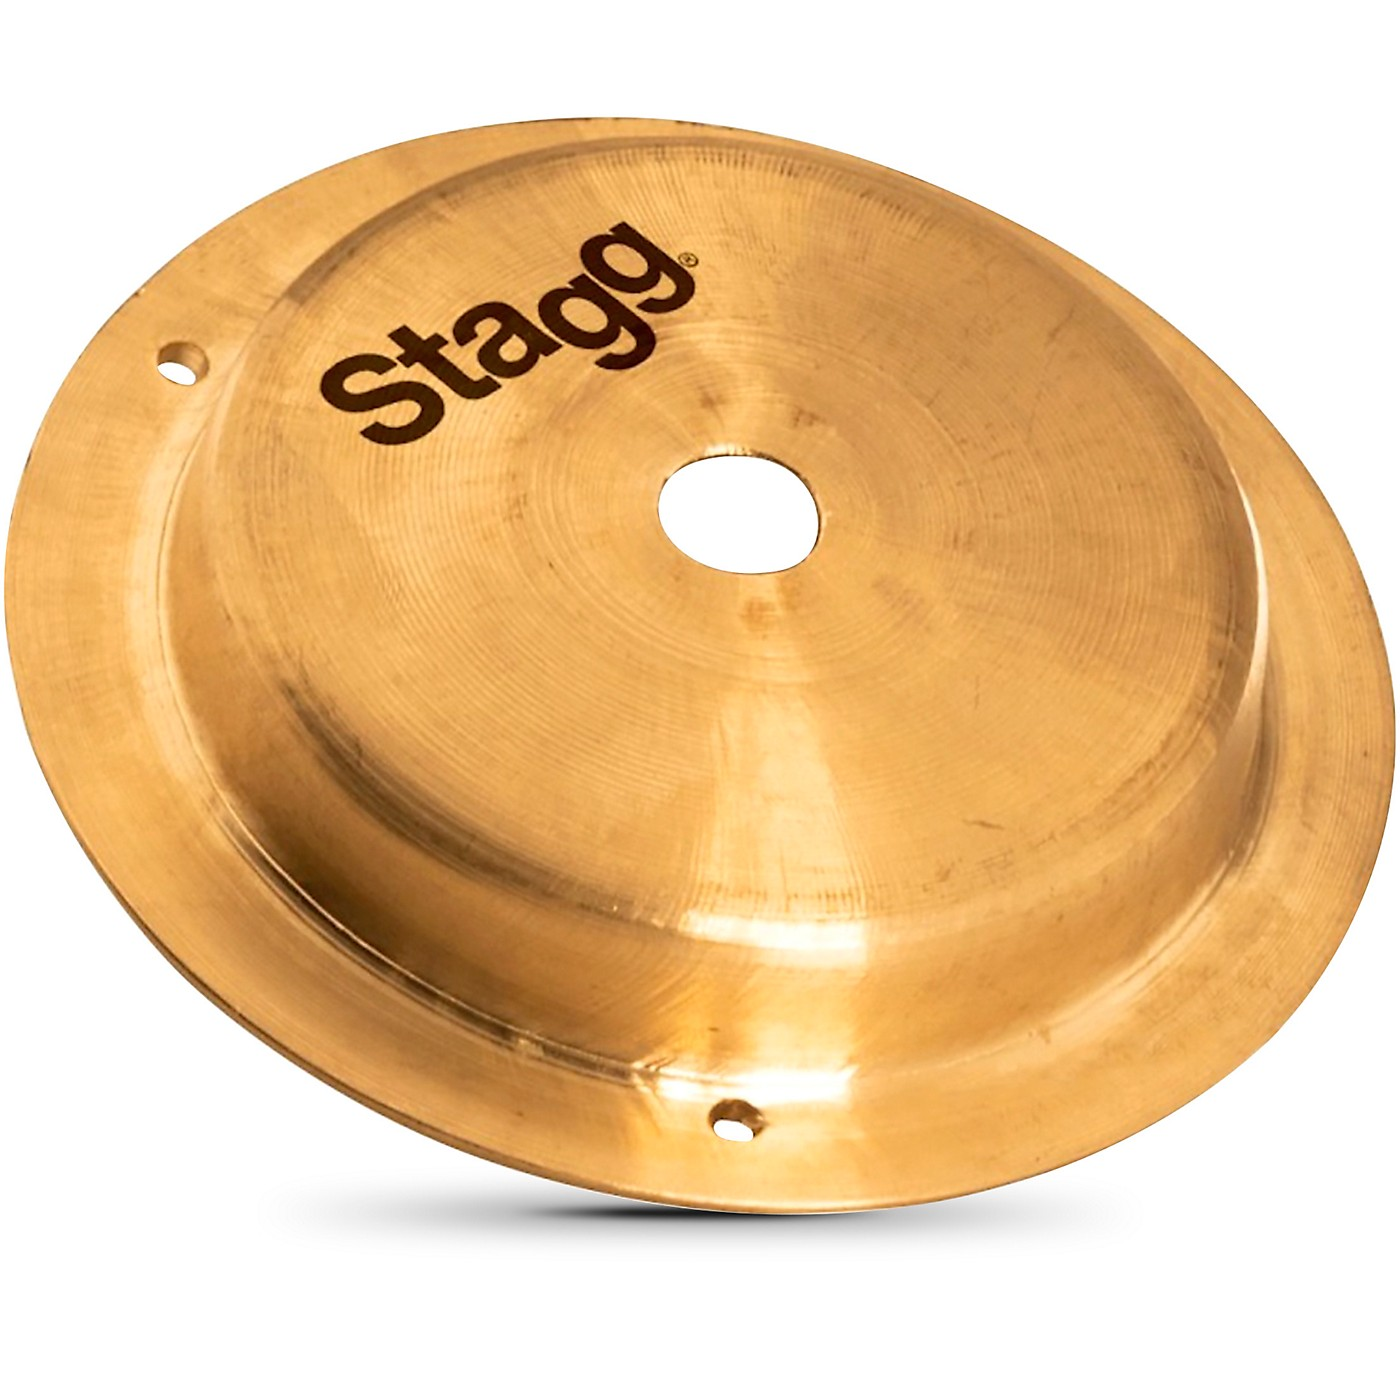 Stagg Dual Hammered Pure Bell thumbnail